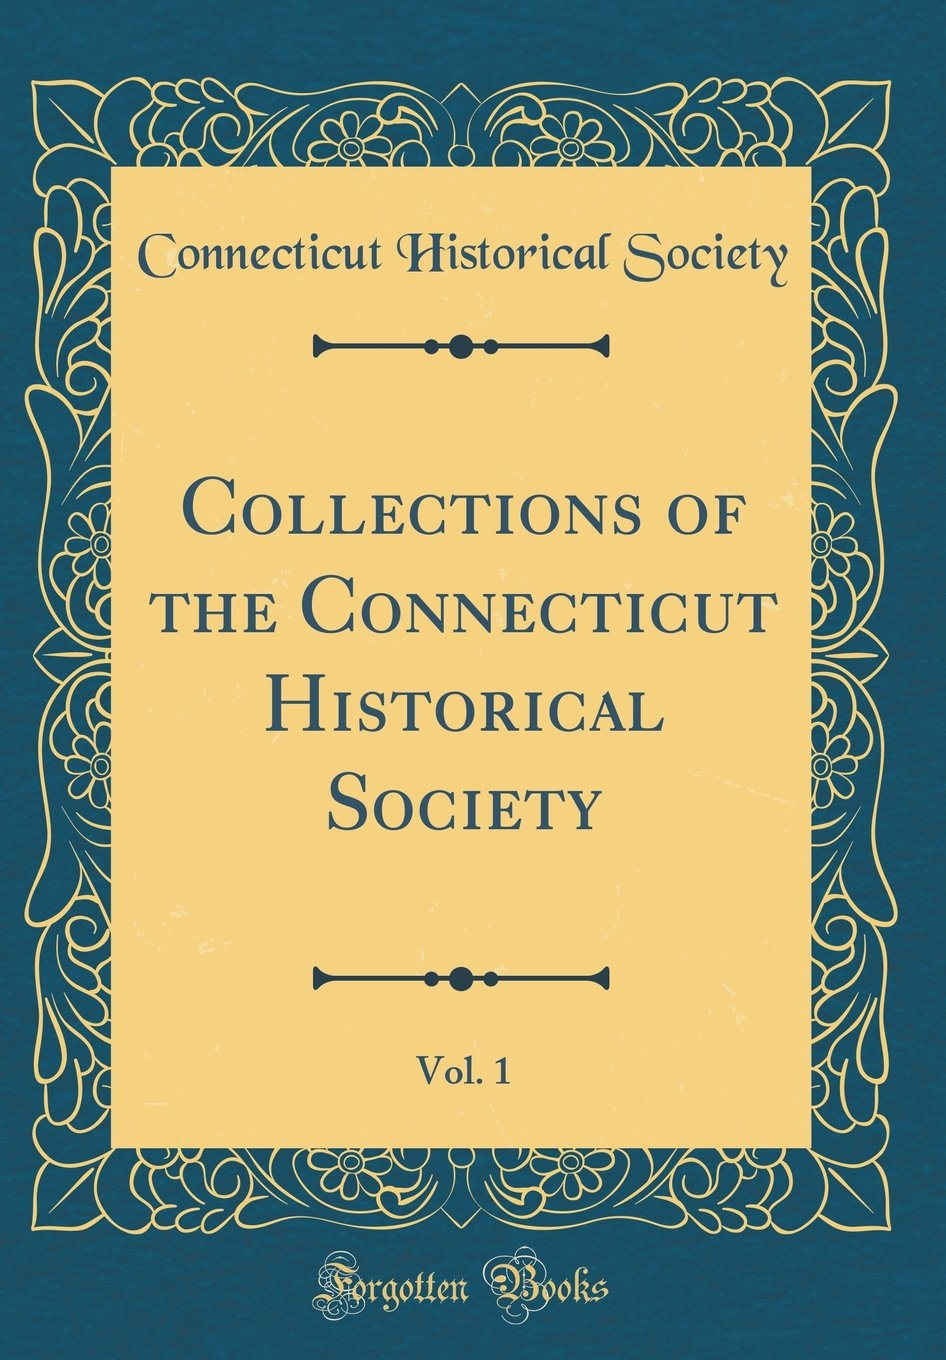 Collections of the Connecticut Historical Society, Vol. 1 (Classic Reprint)